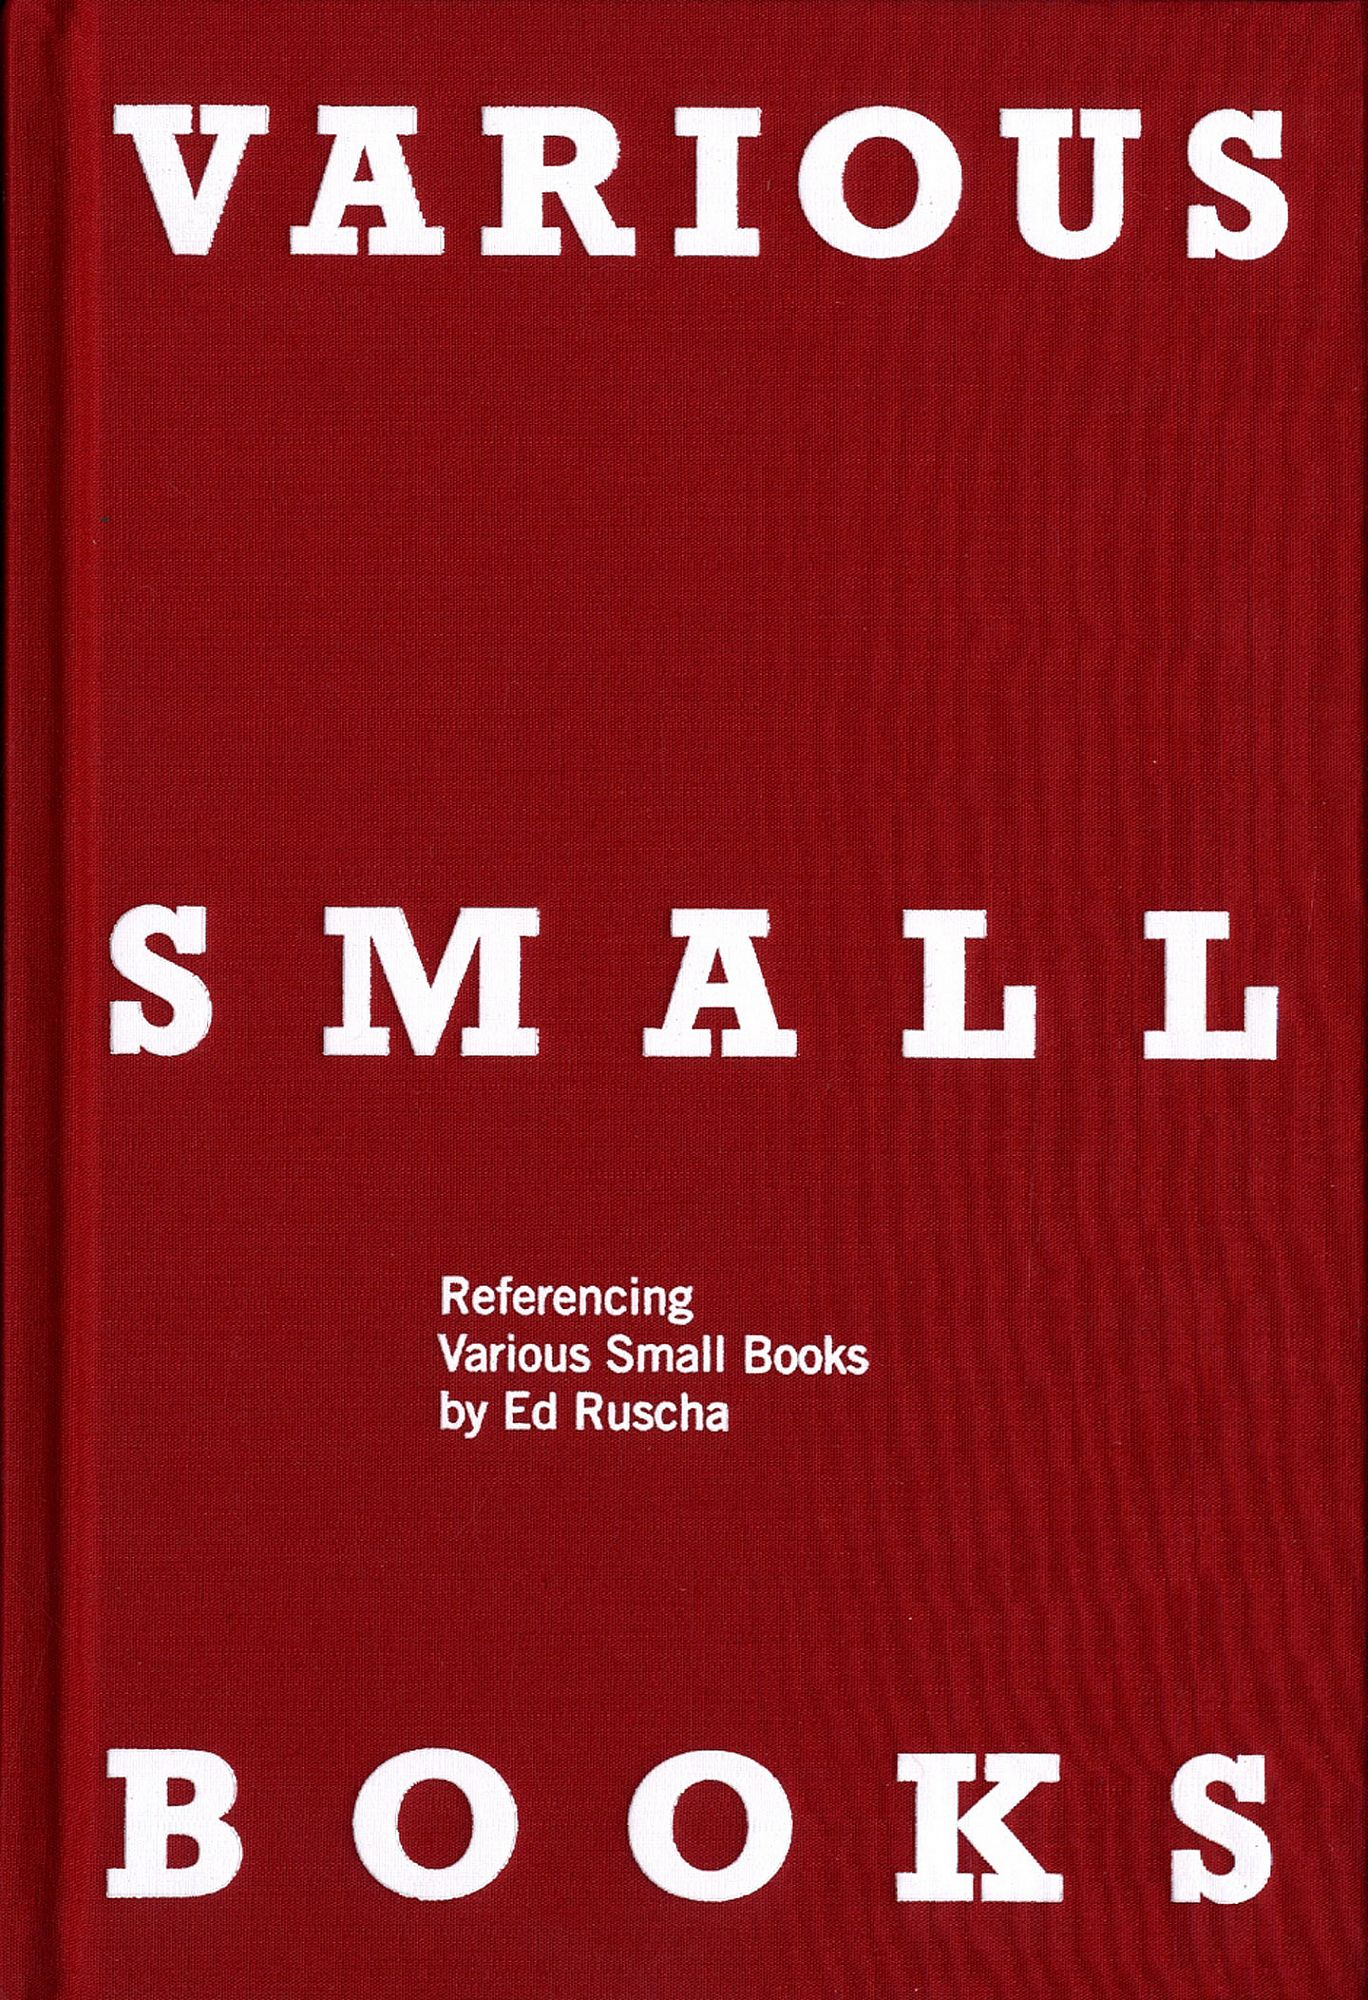 Various Small Books: Referencing Various Small Books by Ed Ruscha [SIGNED by Ruscha]